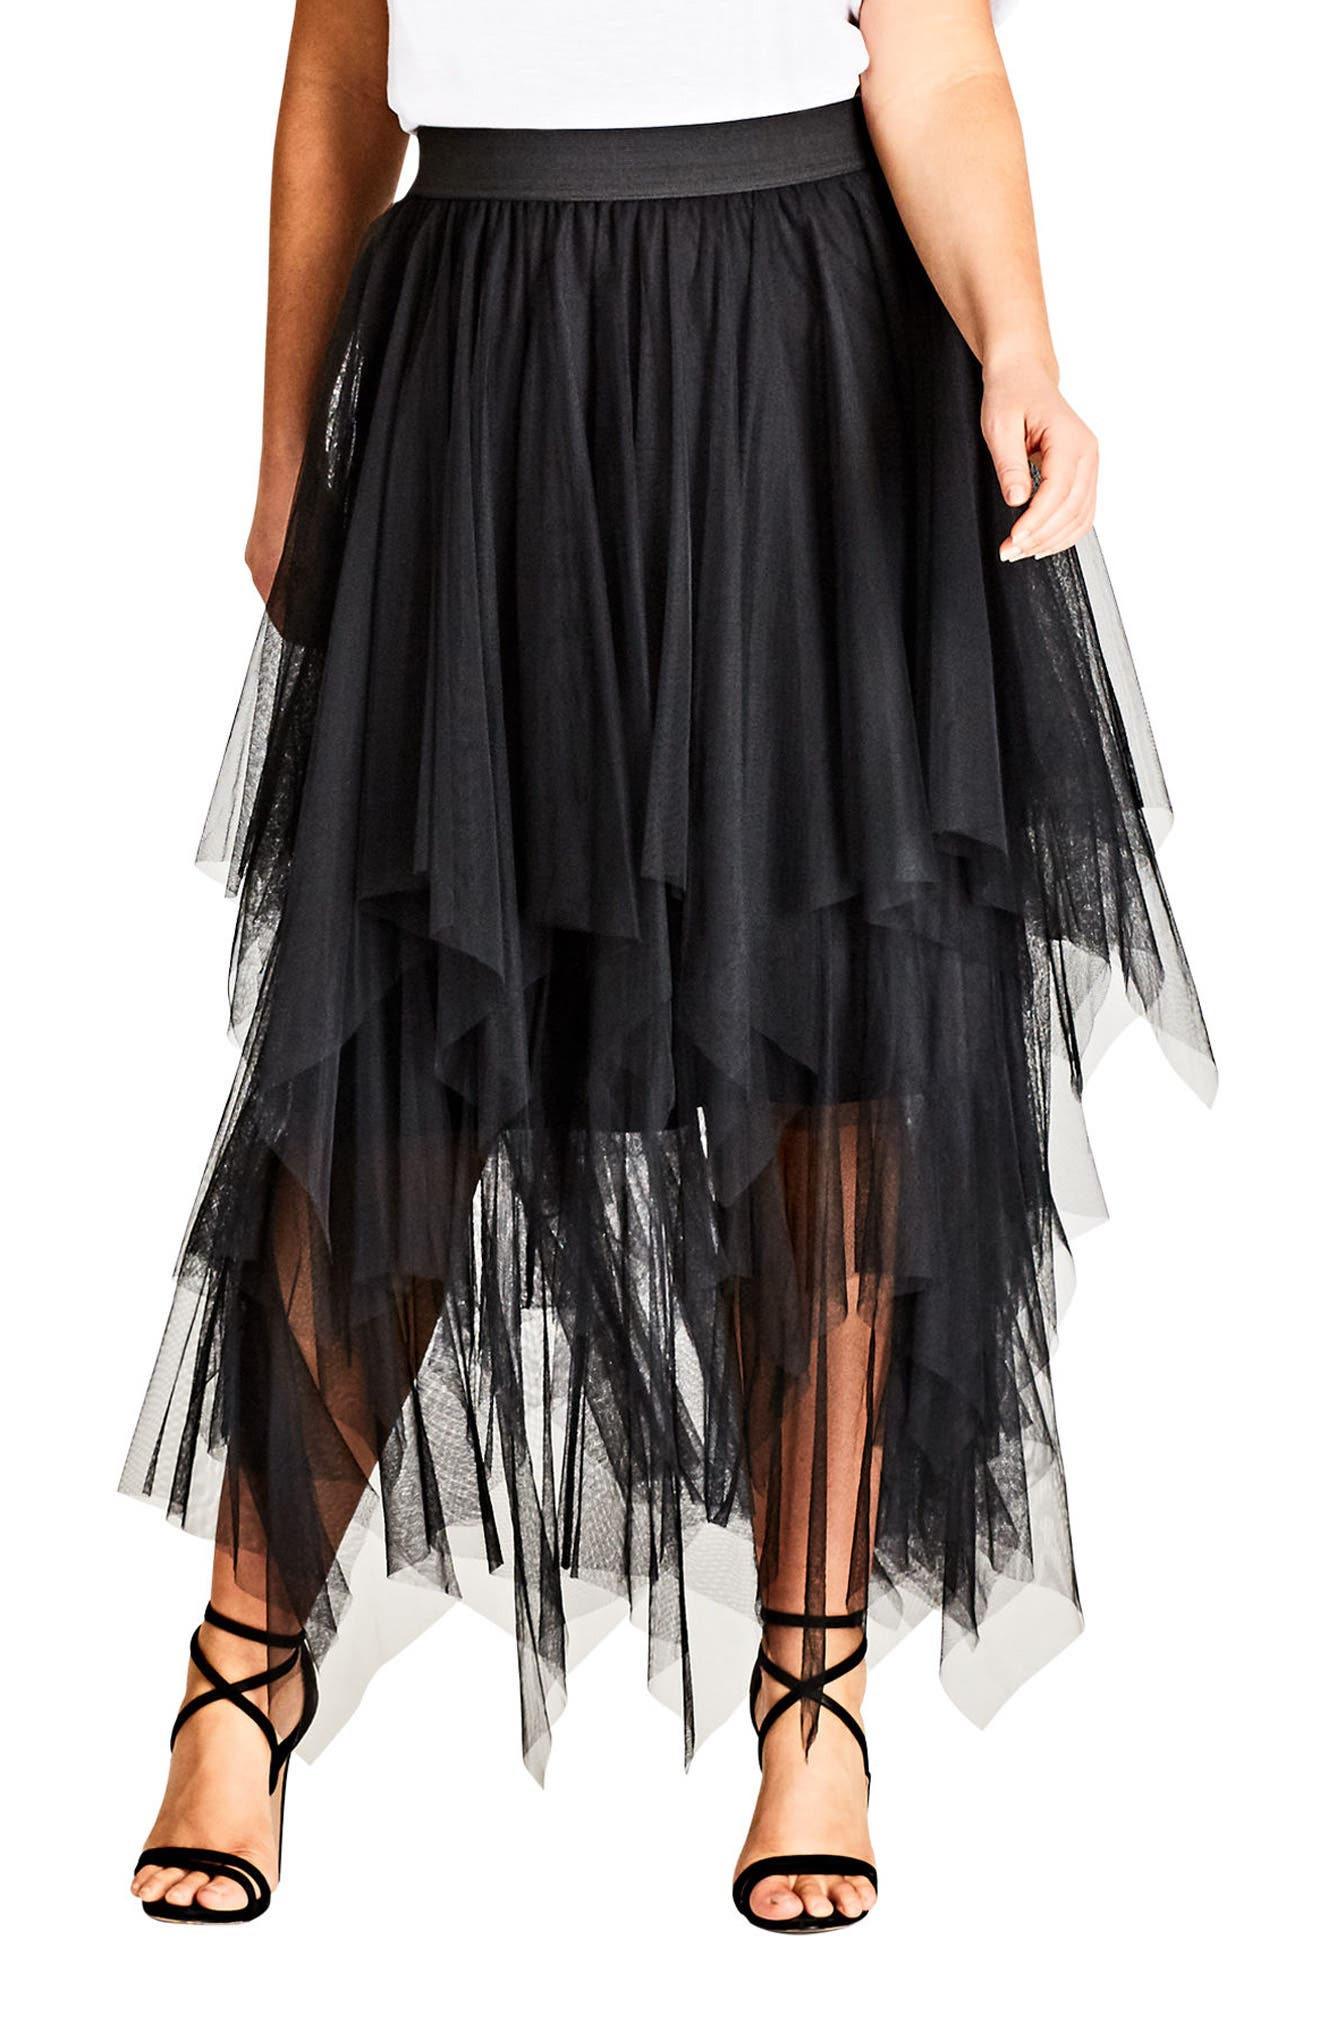 Alternate Image 1 Selected - City Chic Pixy Skirt (Plus Size)